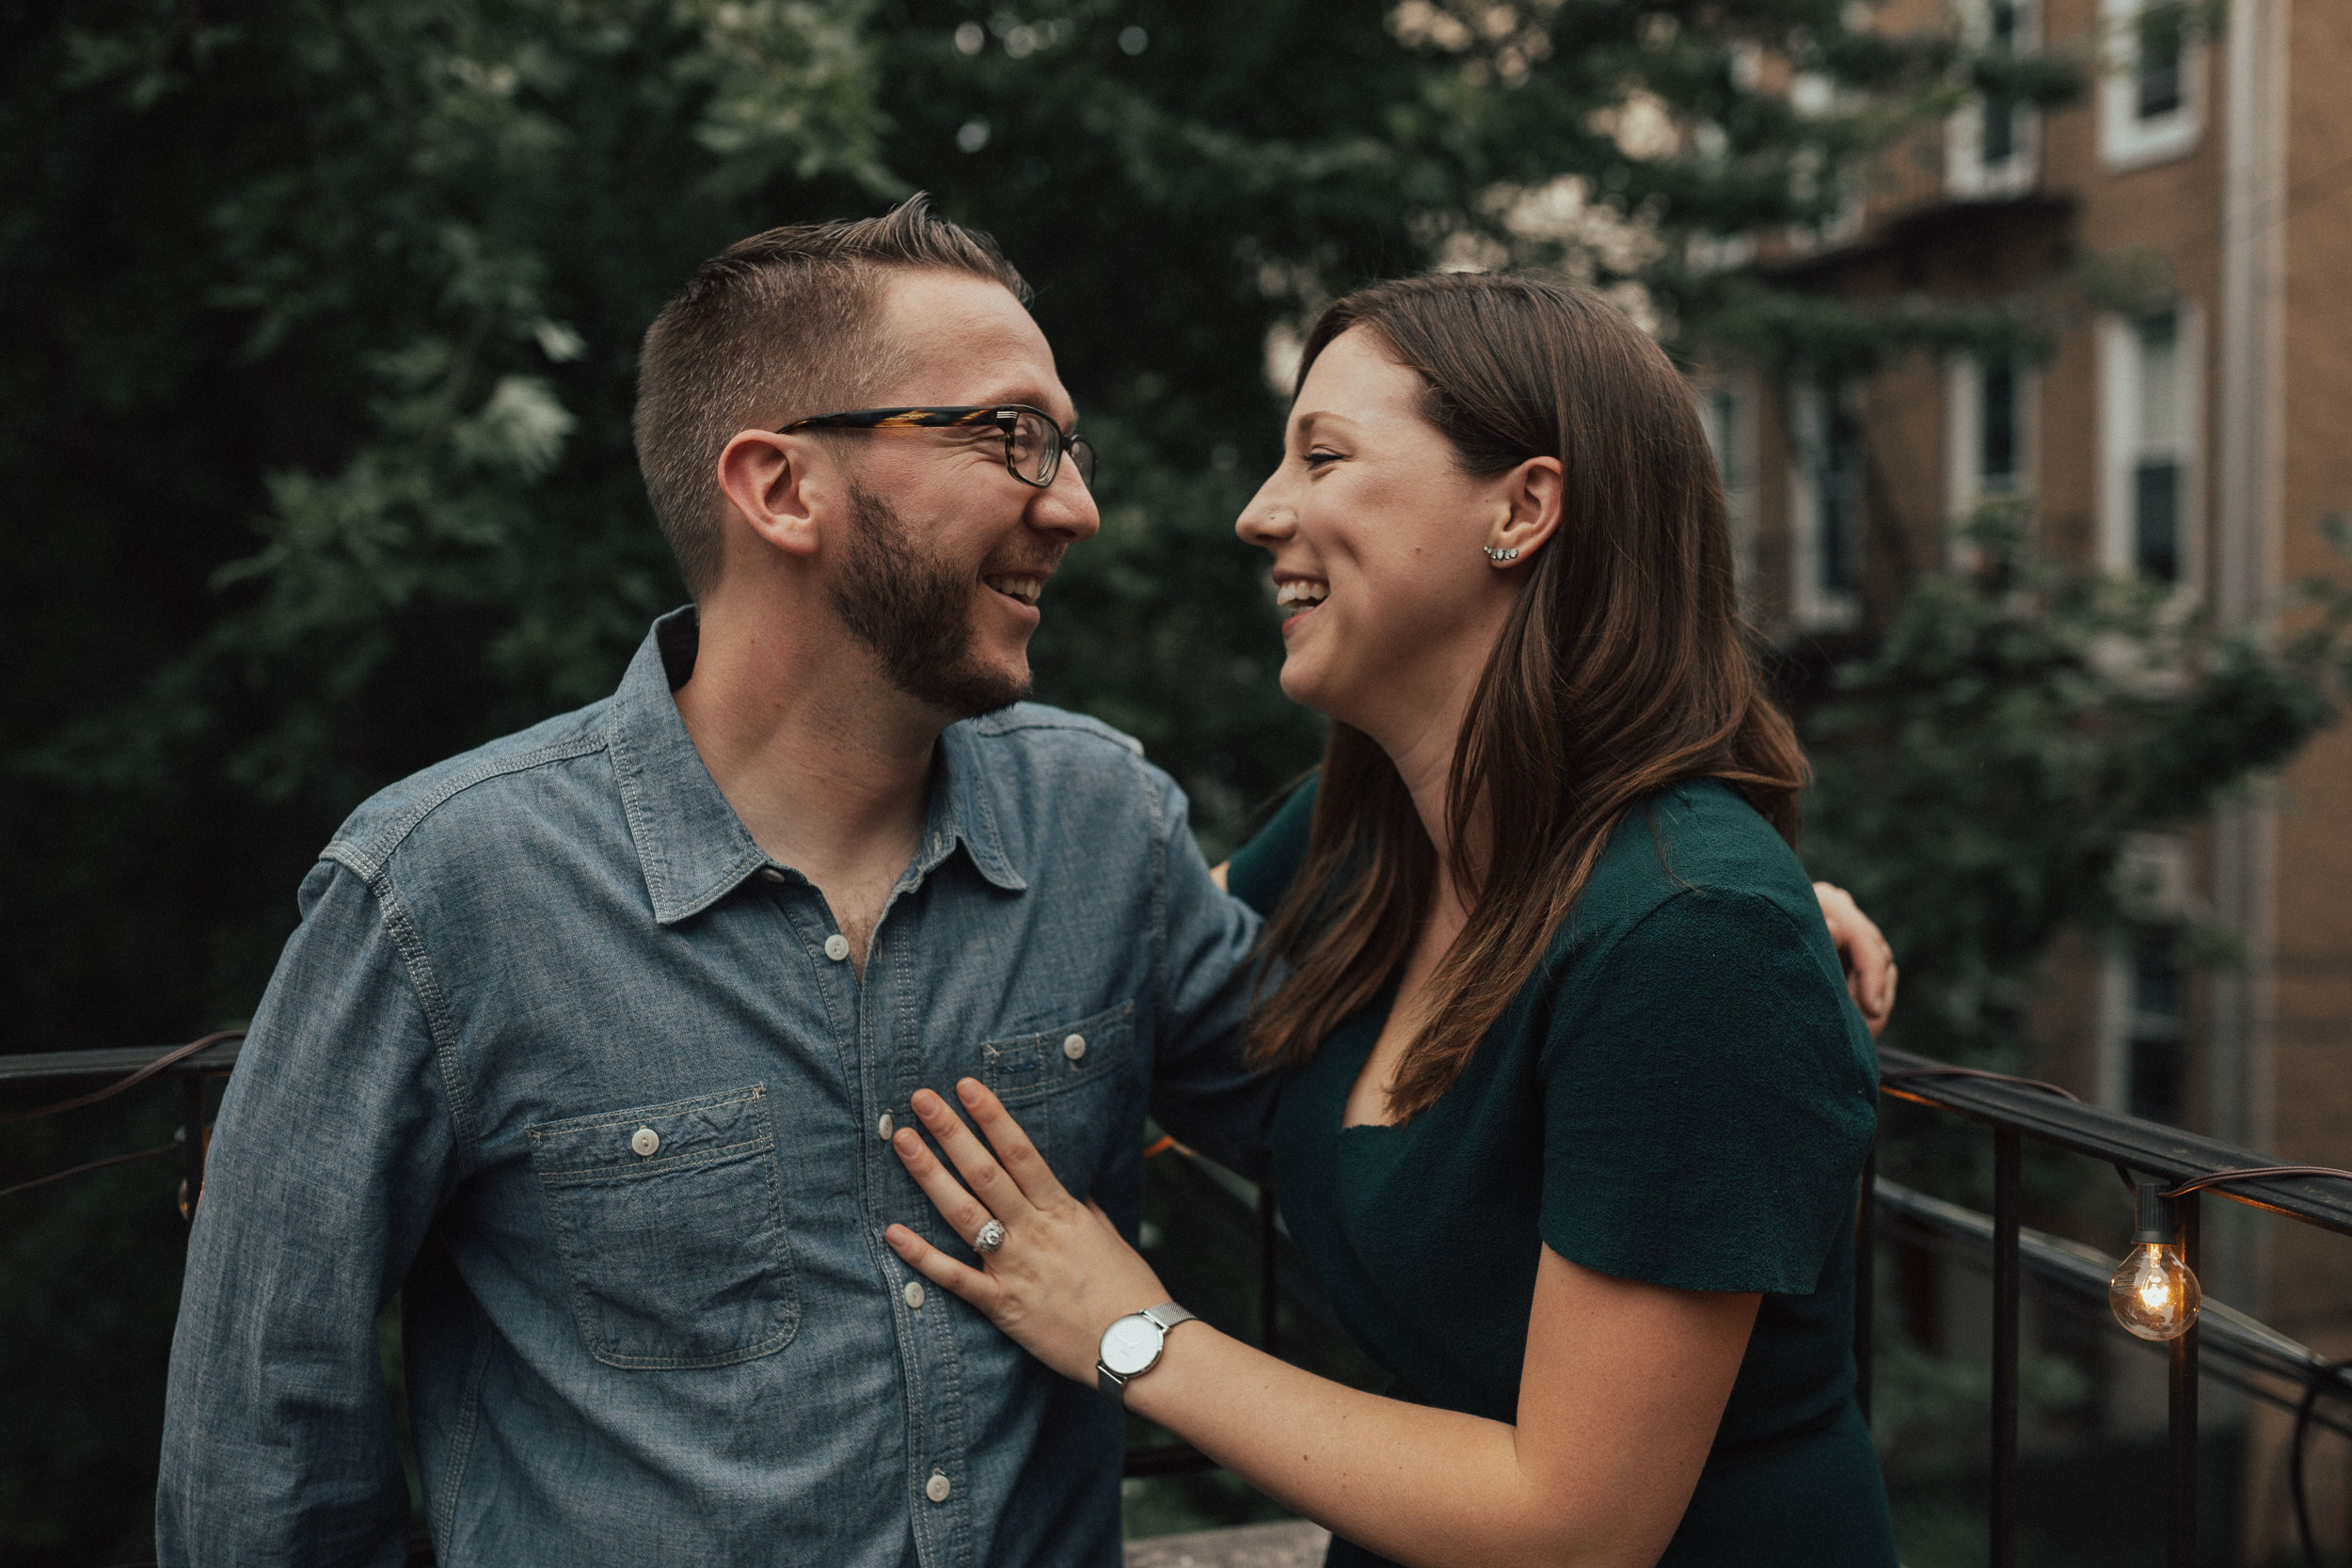 brooklyn_engagement0020.JPG